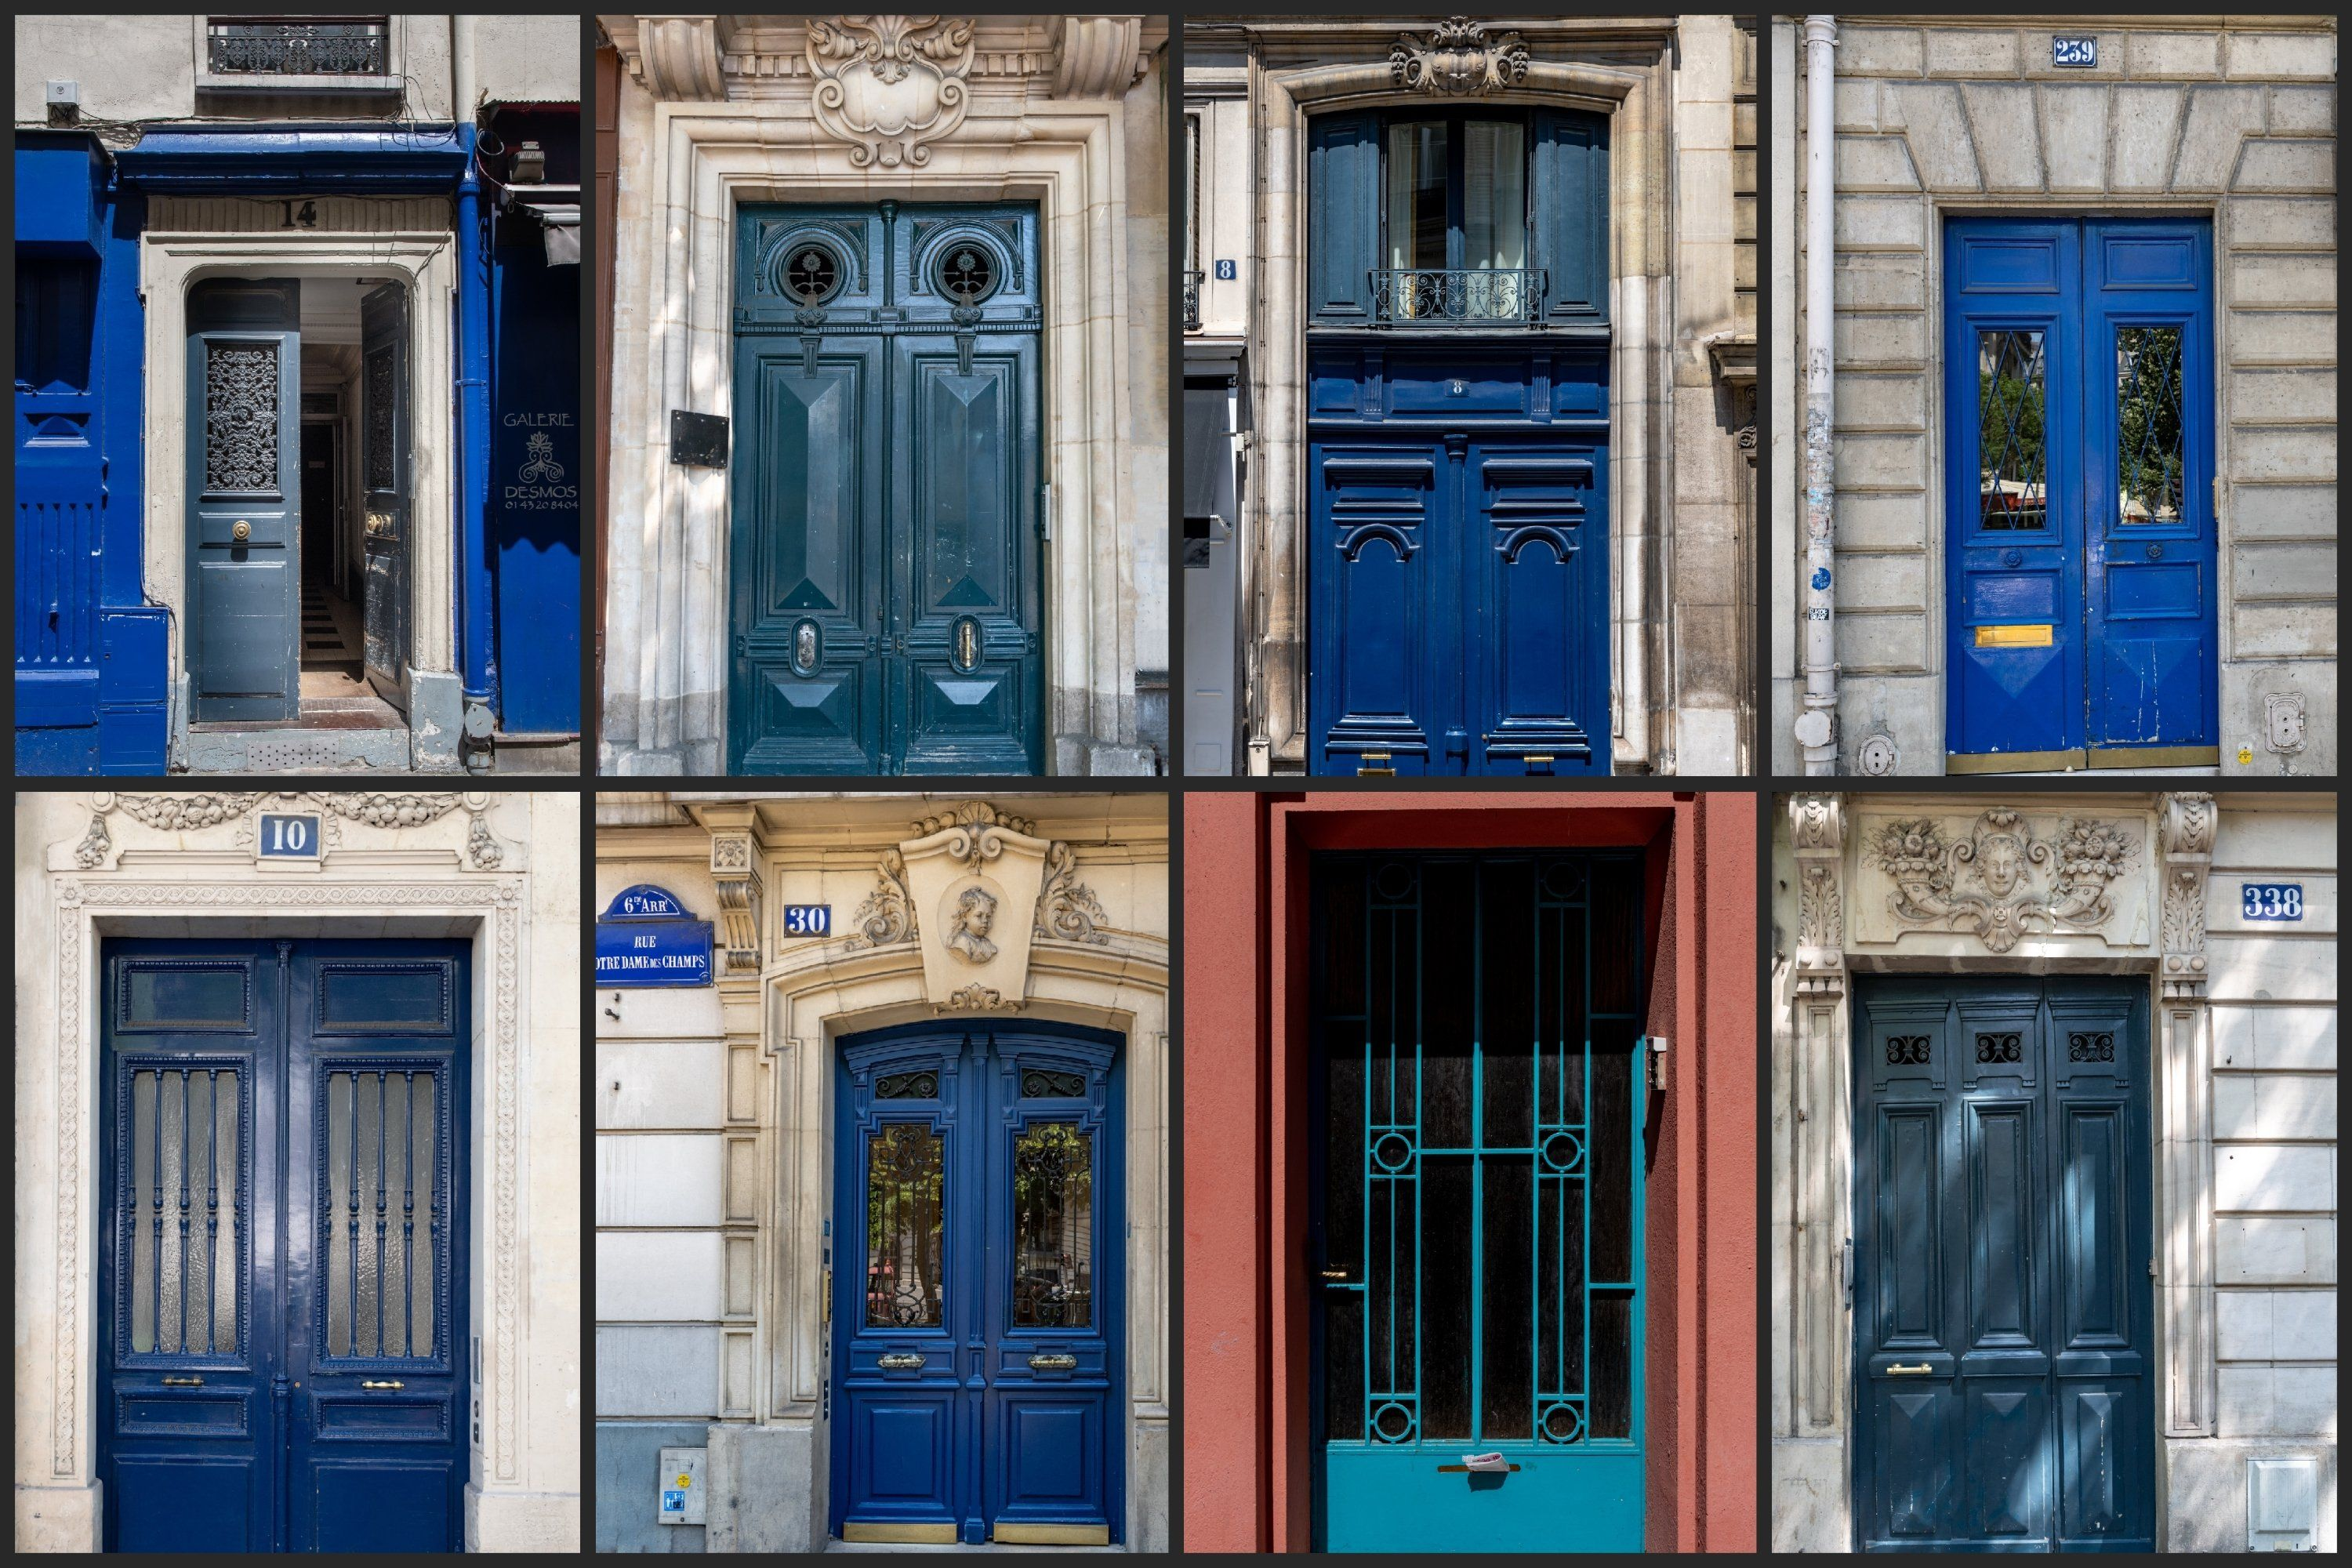 Paris Door Wall Art Set Of 26 Photos Vintage Blue Doors 594860 Travel And Adventure Design Bundles Paris Door Wall Art Sets Art Set